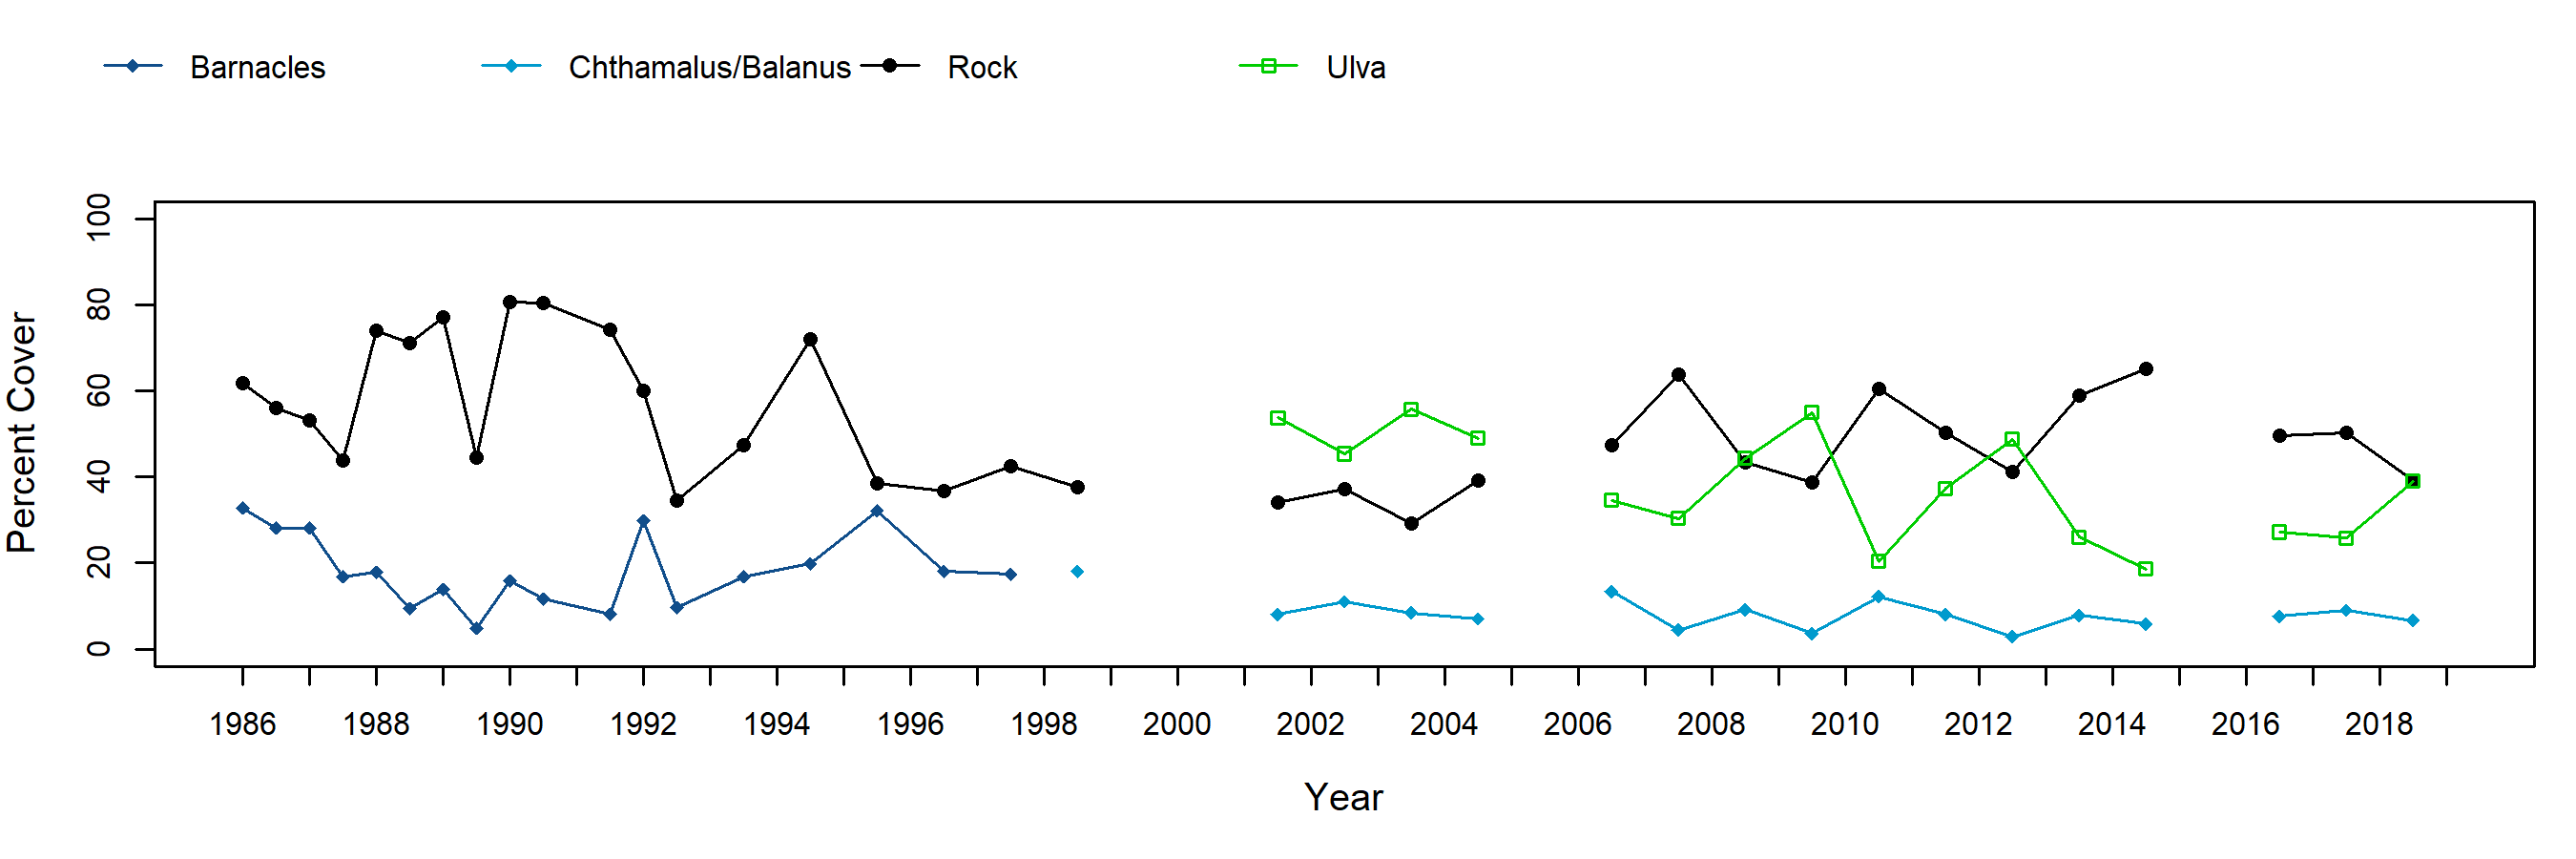 Sea Lion Rookery barnacle trend plot